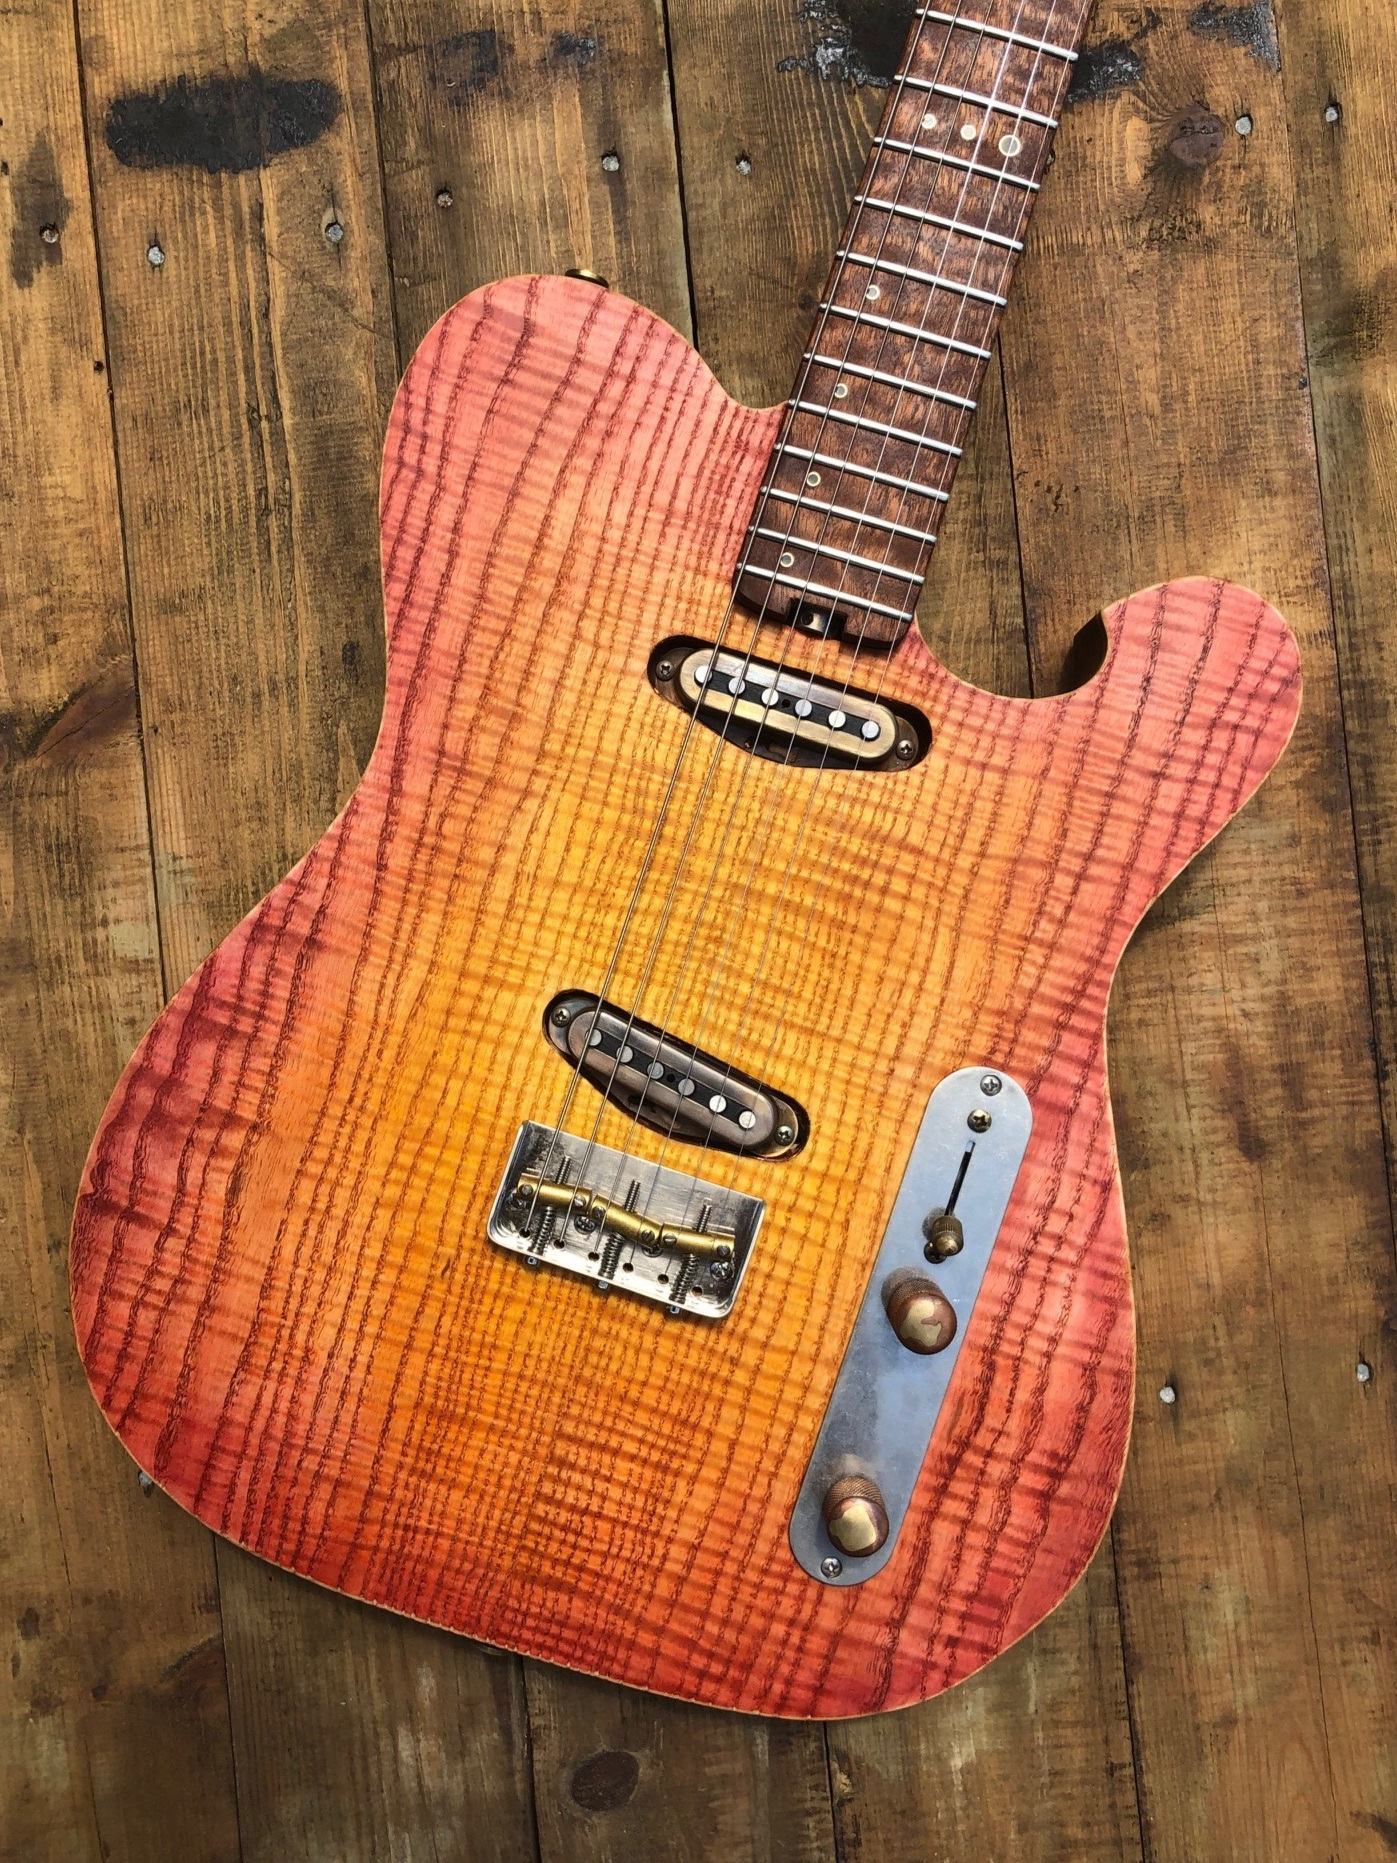 Custom built RAM t-type - Elm Solid body with an figured Ash topCherry neck quilted Sapele fret boardFuente hand wound single coil pickupsThrough body bridgeSpurzel locking tunersCTS potentiometersOrange drop capacitor